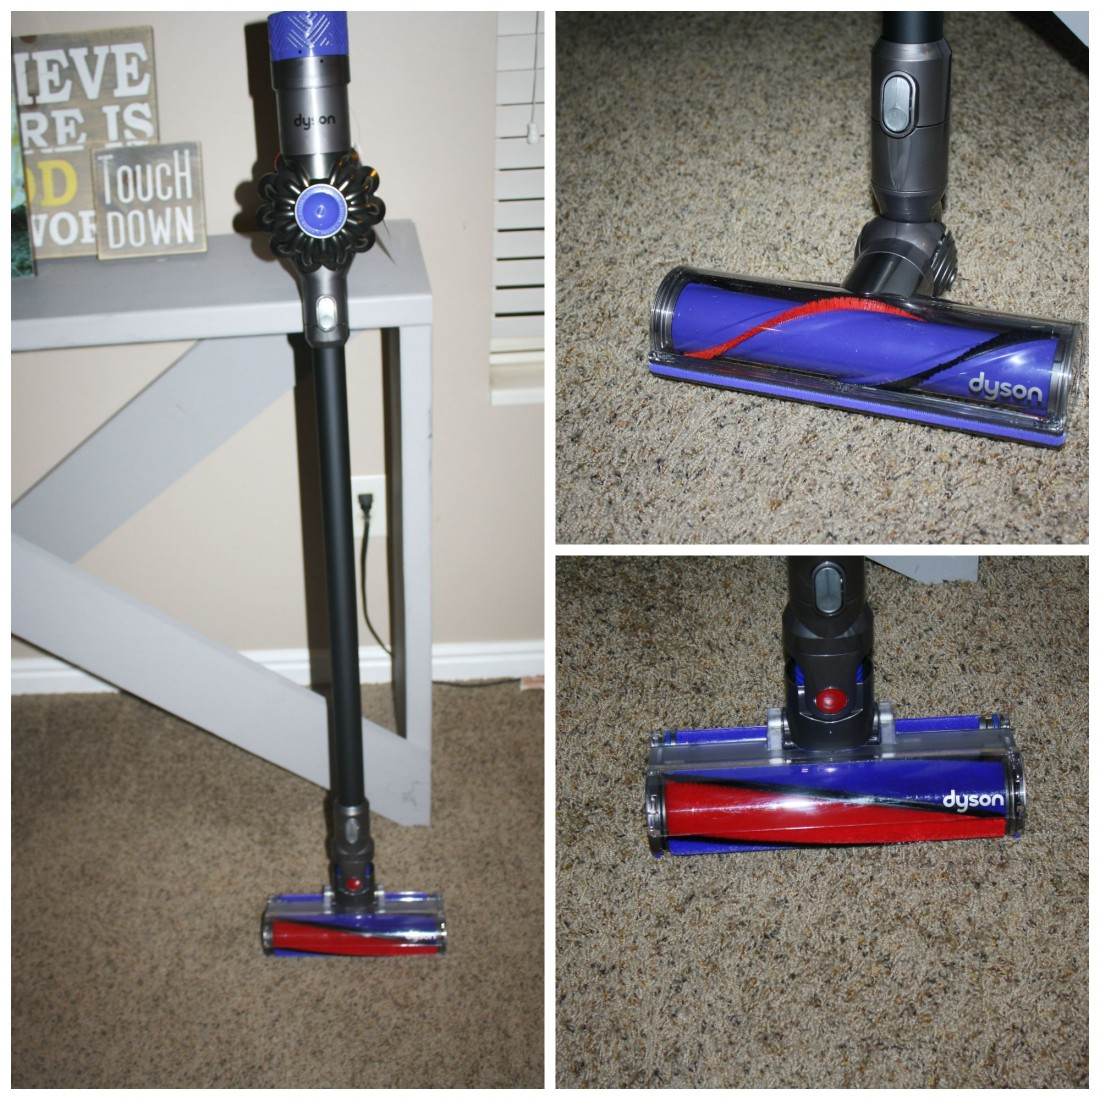 Dyson V6 Absolute on QVC Today : PicMonkey Collage13 1100x1100 from www.thebraggingmommy.com size 1100 x 1100 jpeg 314kB